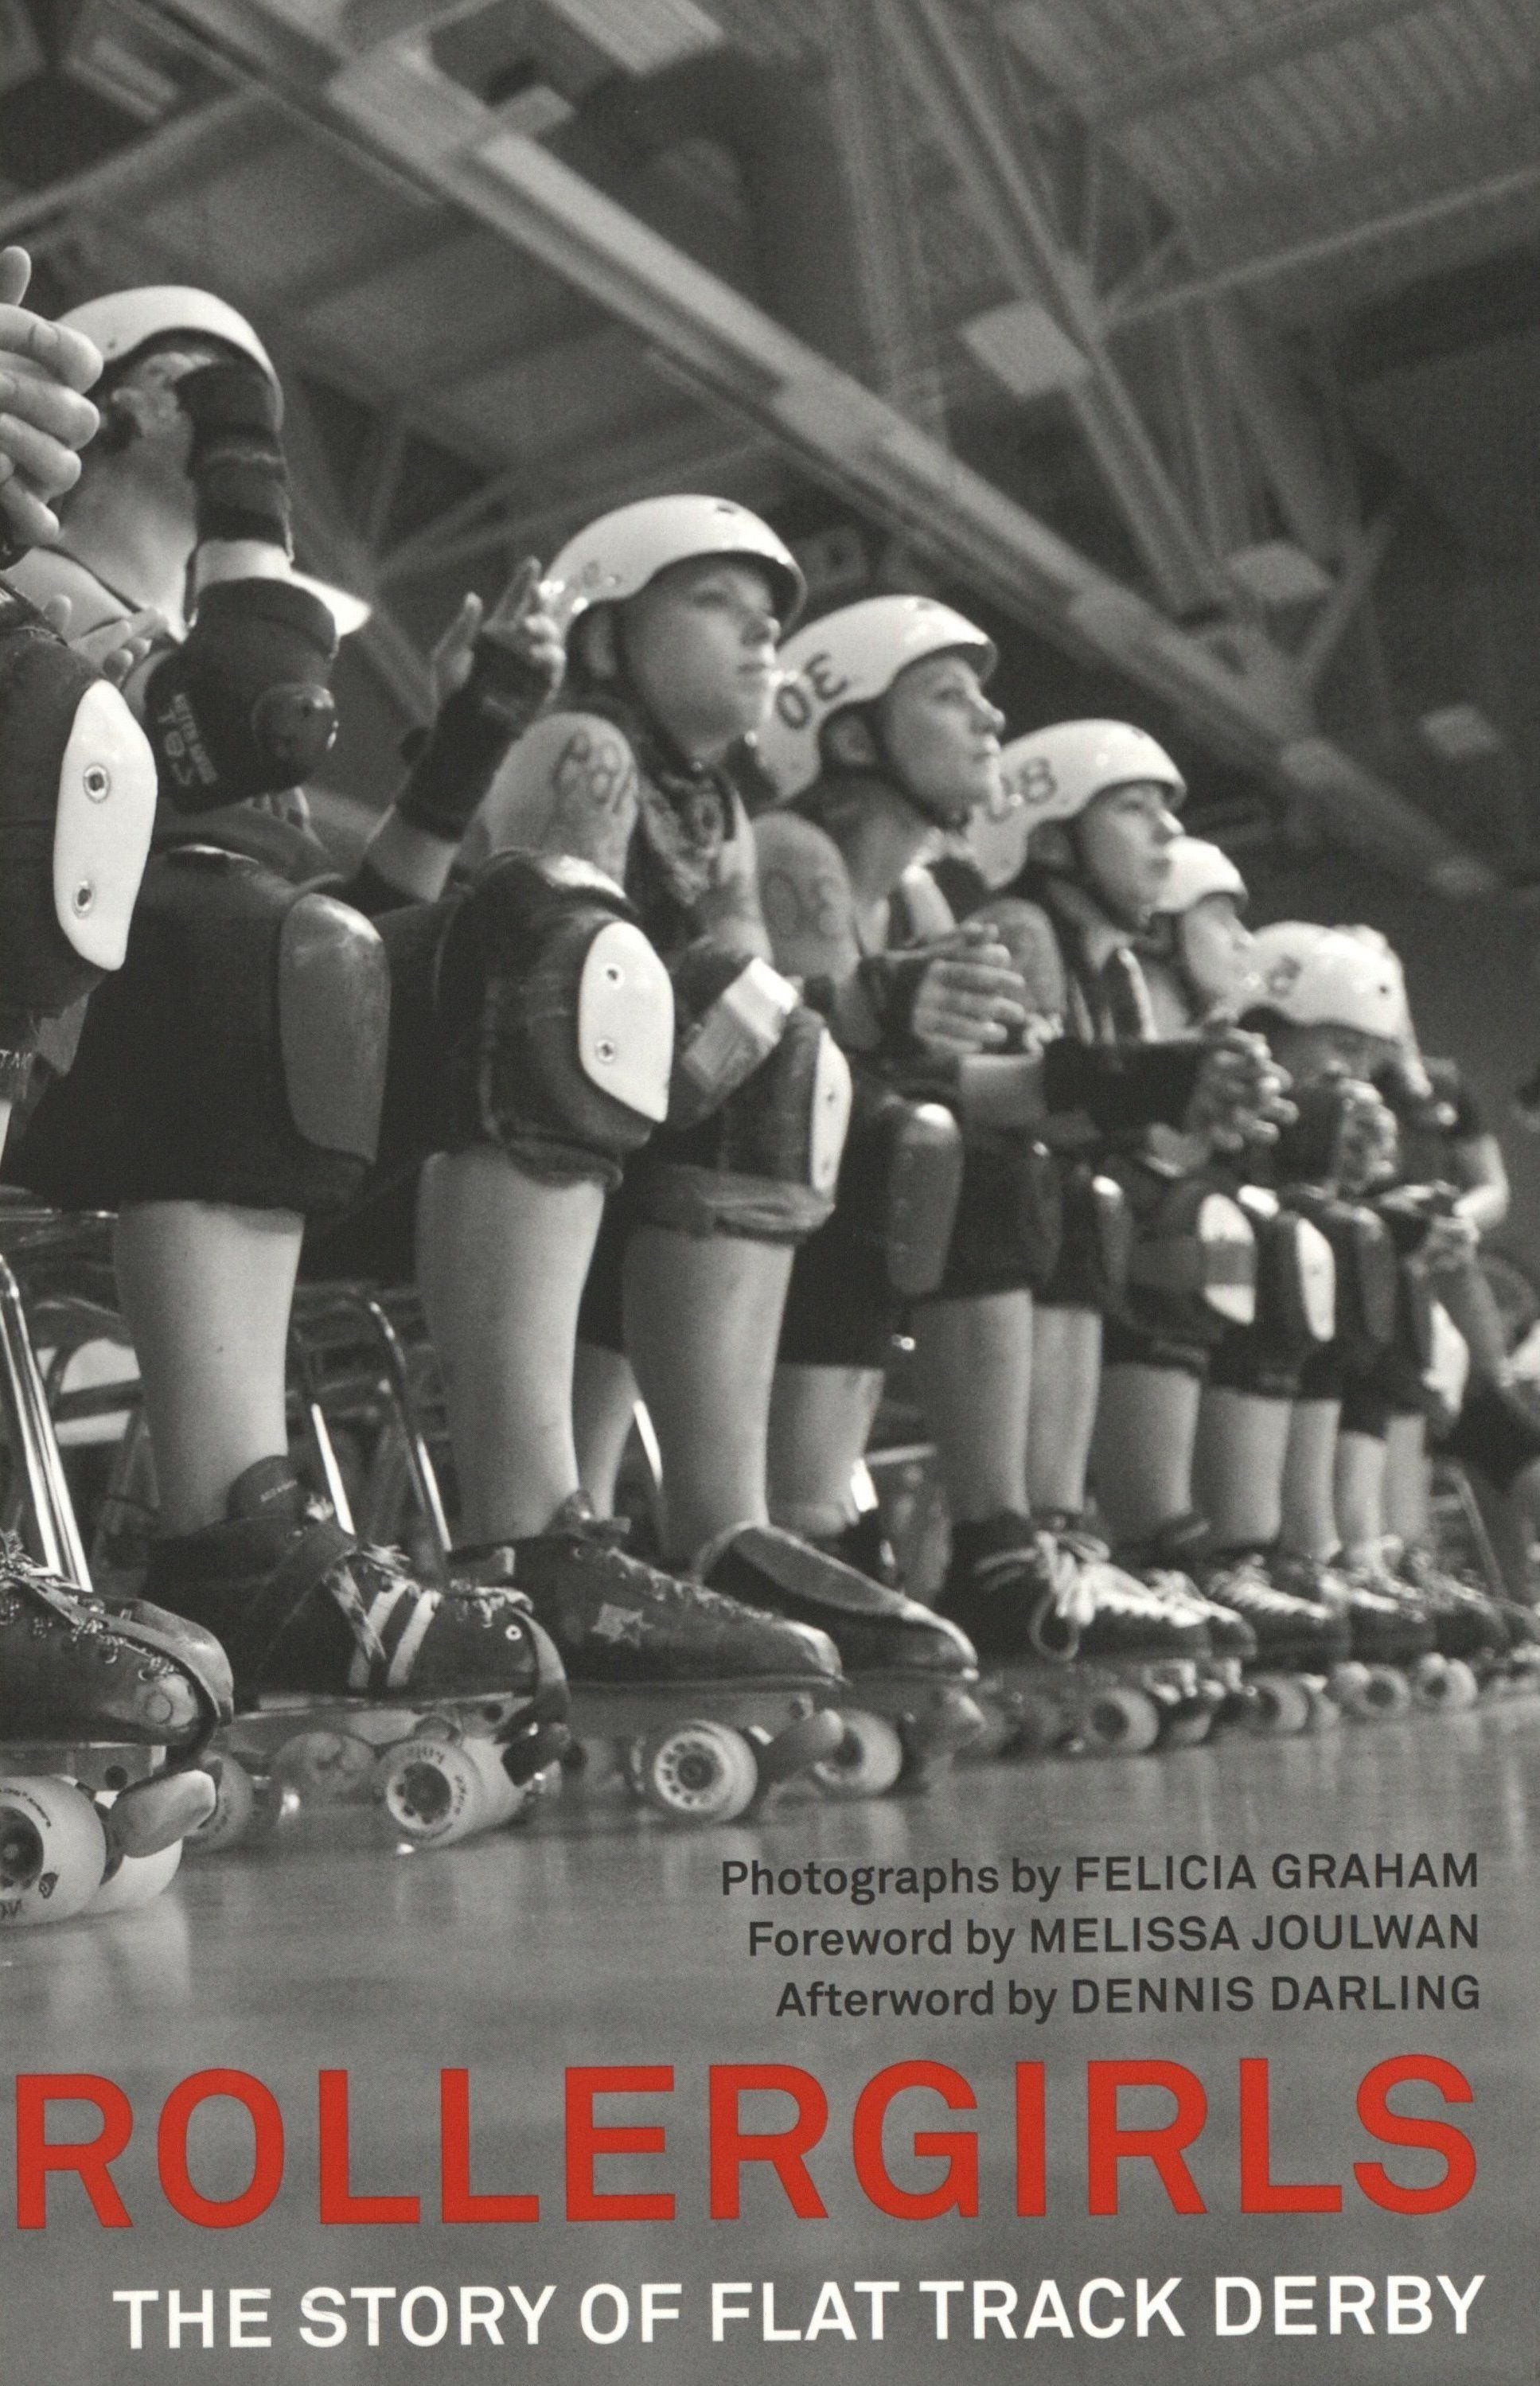 Graham, Felicia. Rollergirls: The Story of Flat Track Derby. San Antonio: Trinity University Press, 2018.